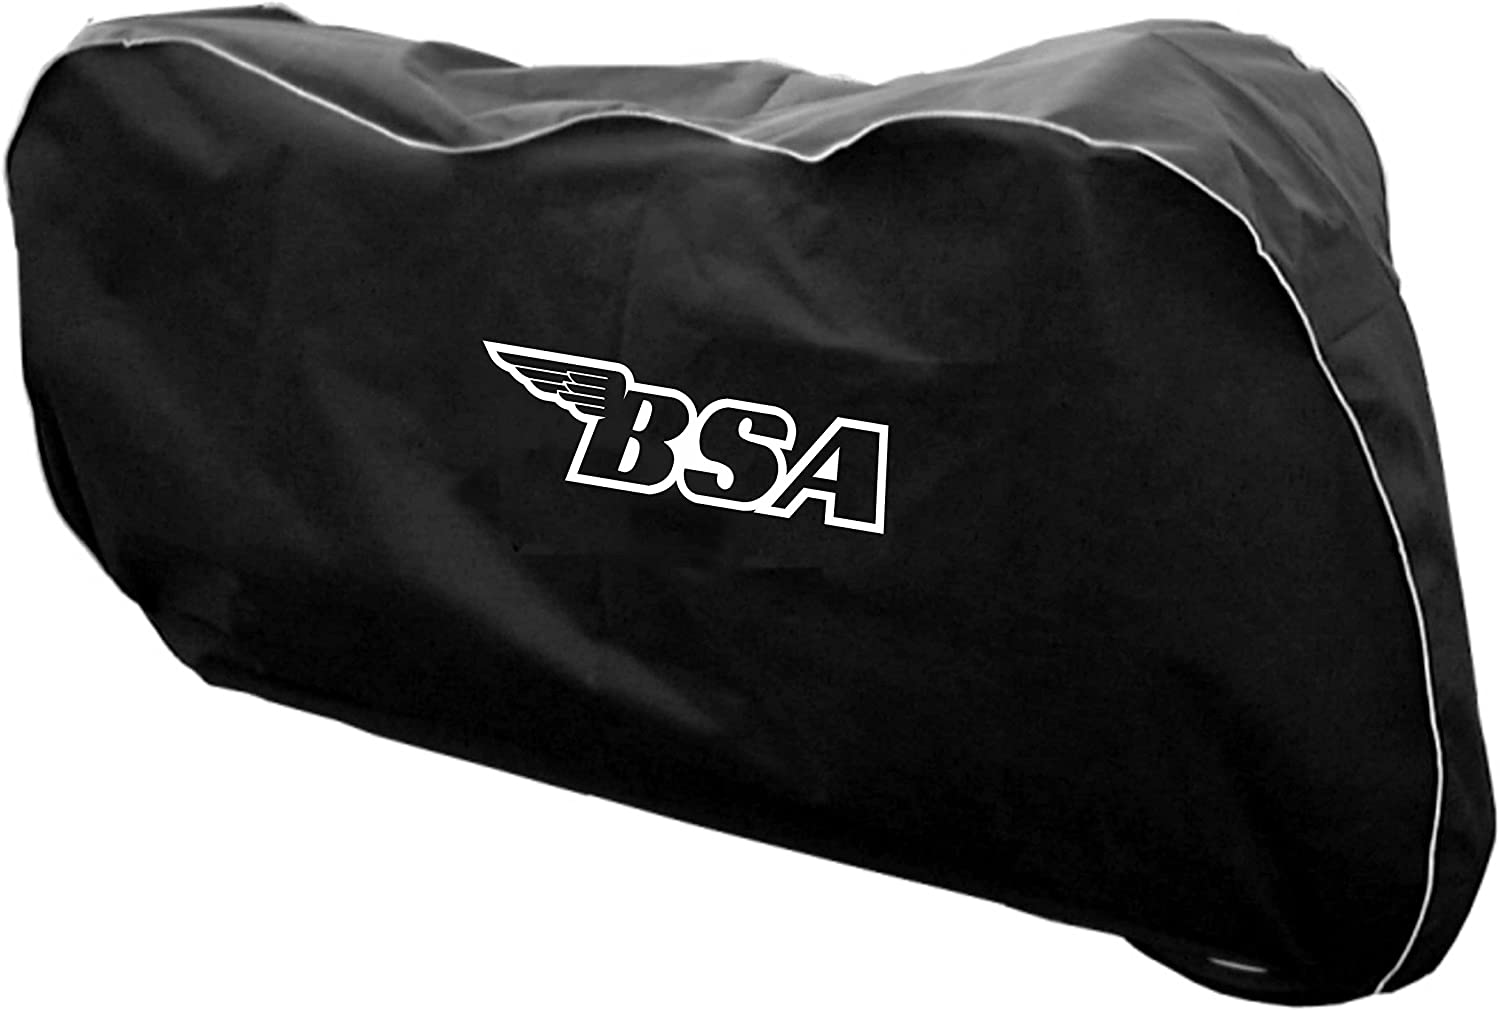 BSA A10 Motorcycle Cover Breathable Water Resistant Motorbike